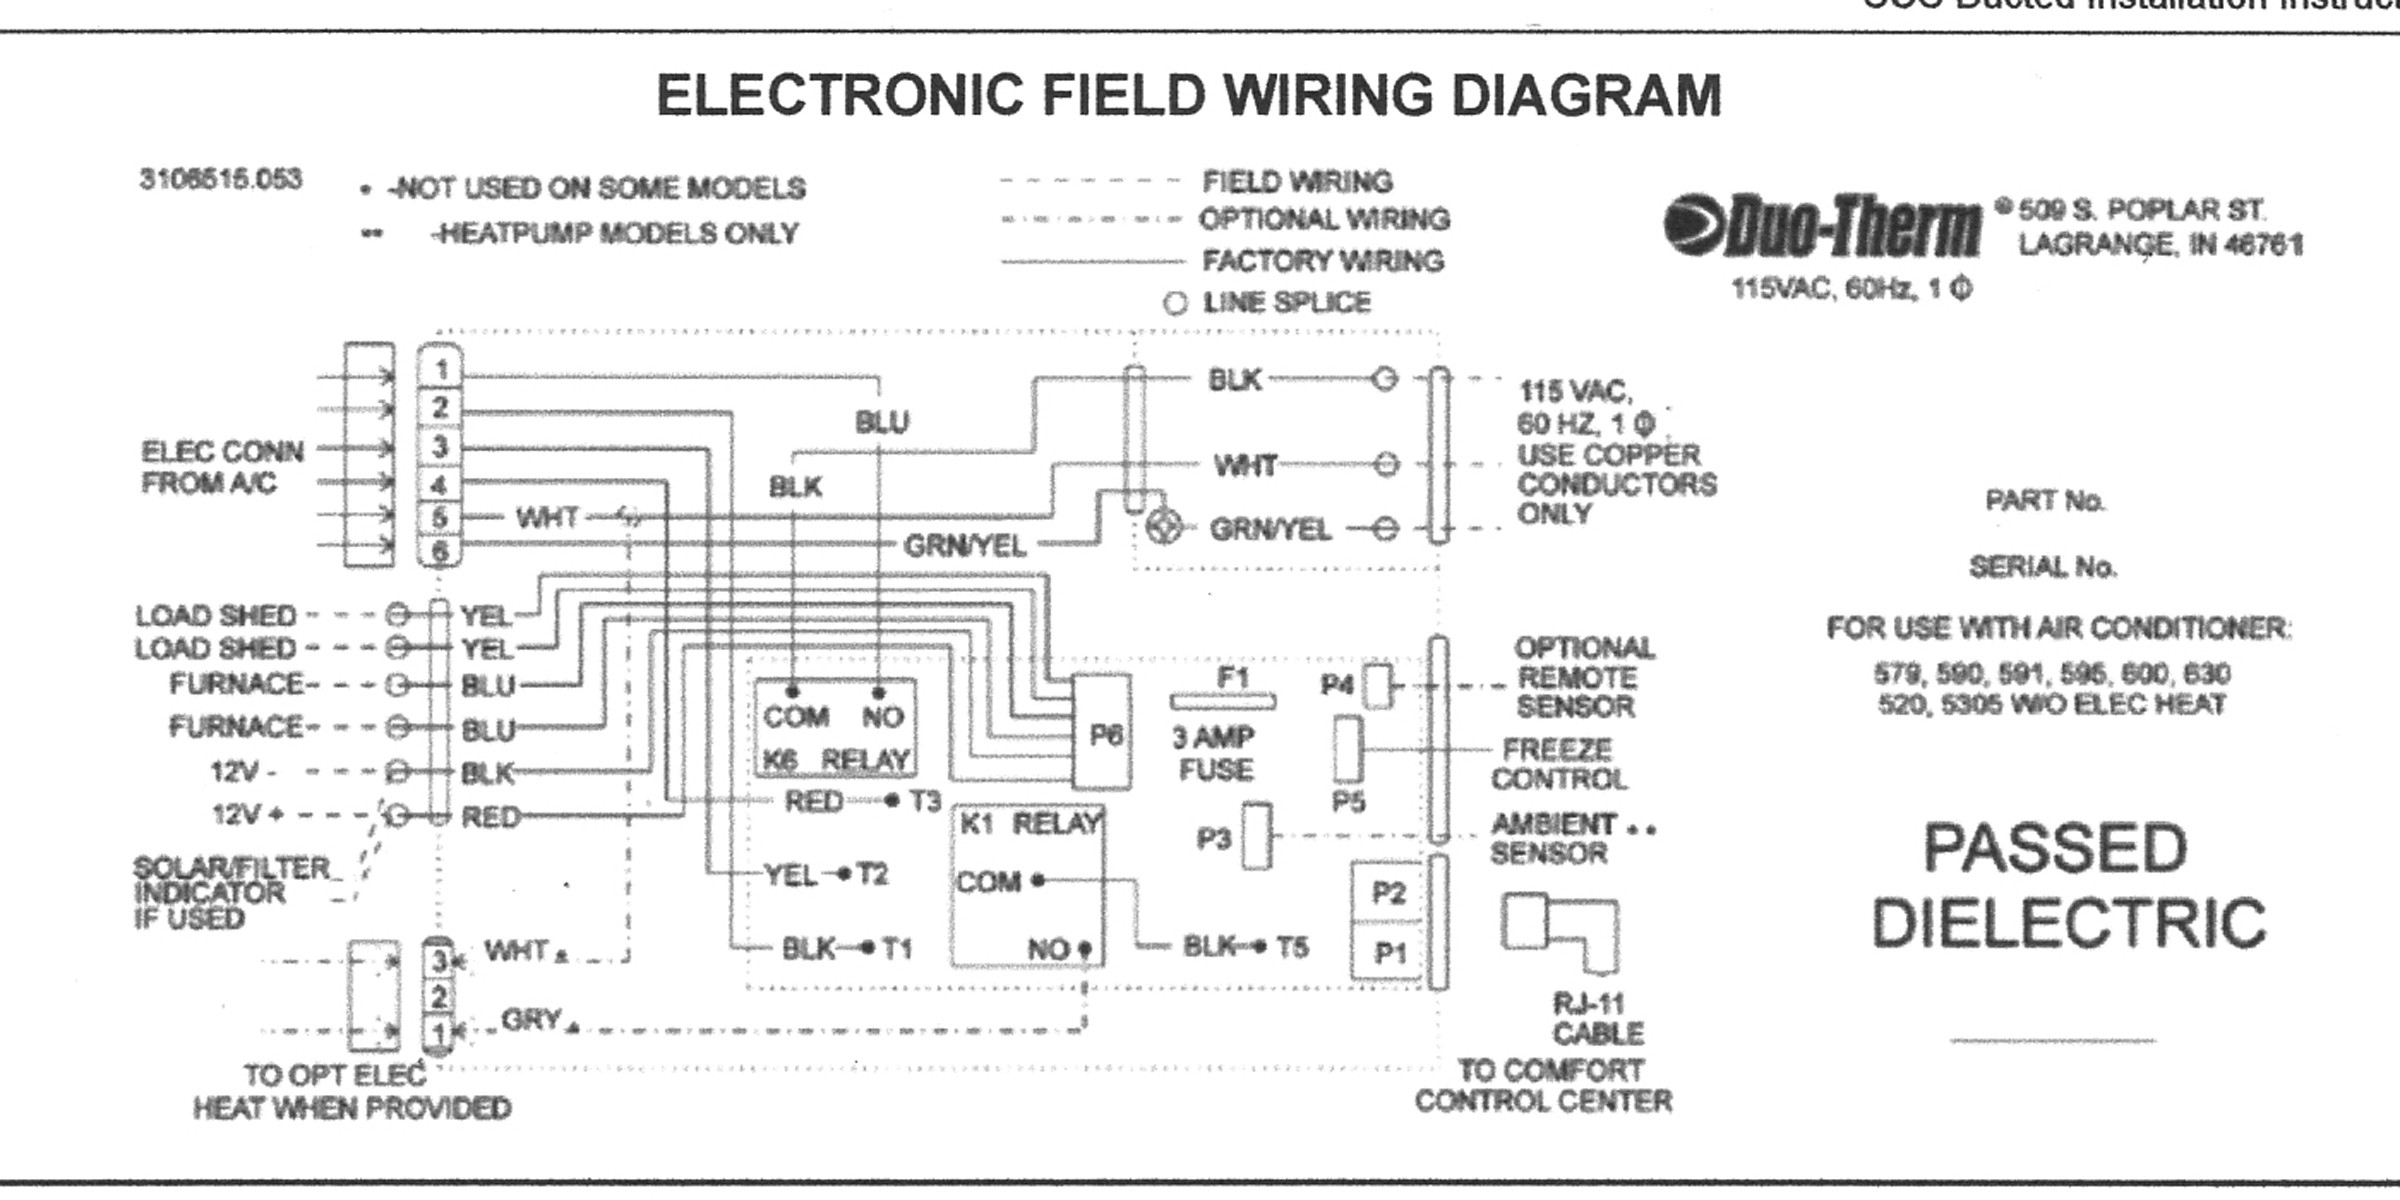 Ac Duo Therm Thermostat Wiring Diagram | Wiring Library - Duo Therm Thermostat Wiring Diagram